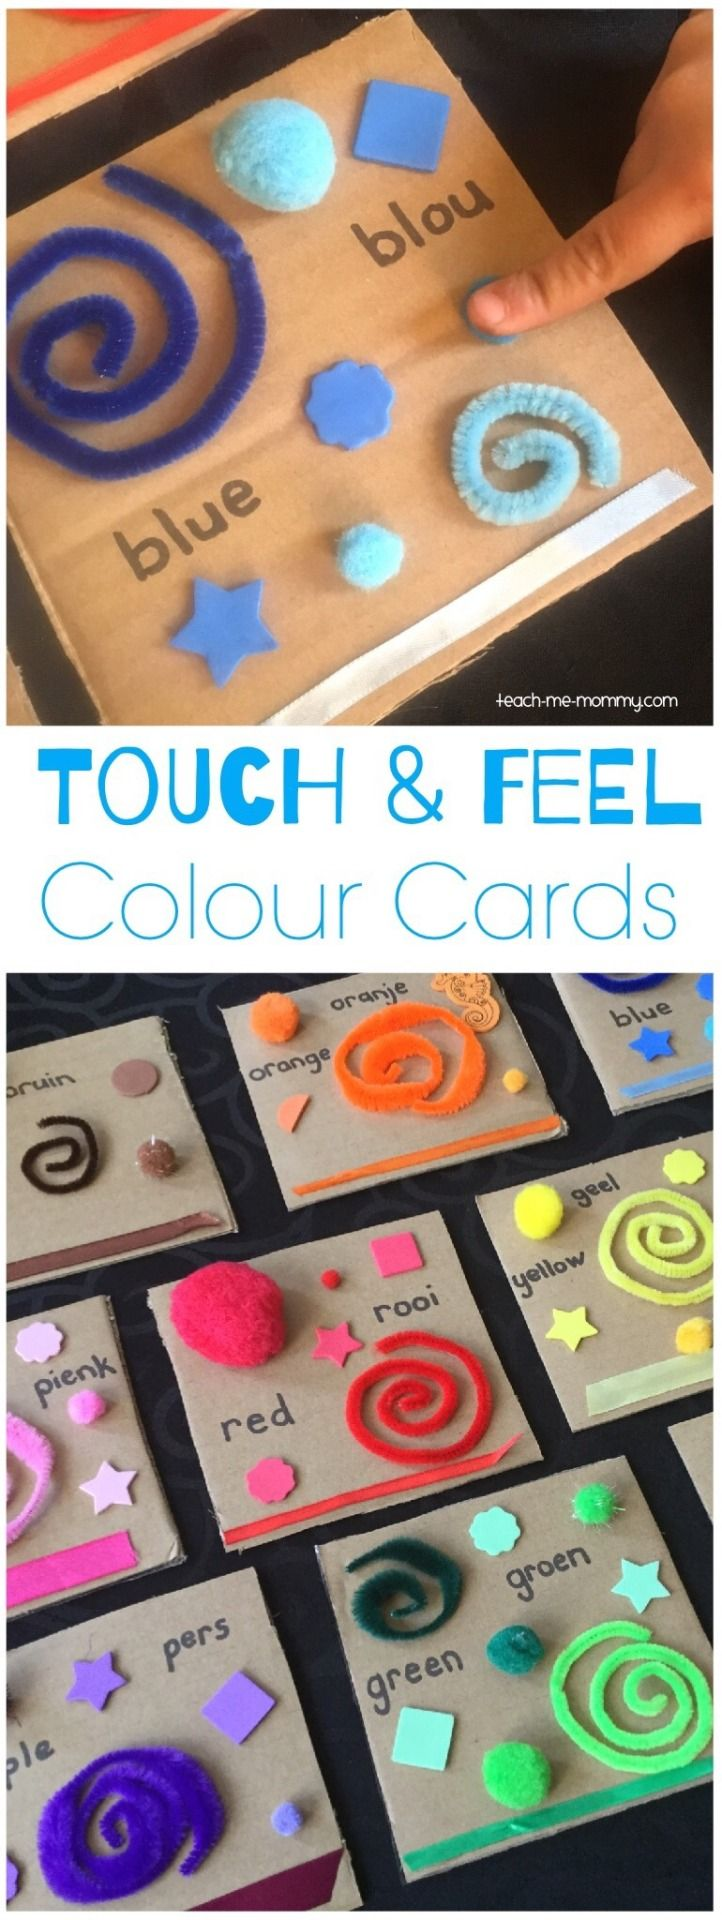 These sensory color cards from Teach Me Mommy are simple to recreate with affordable crafts materials. Babies and toddlers will have fun learning by u…